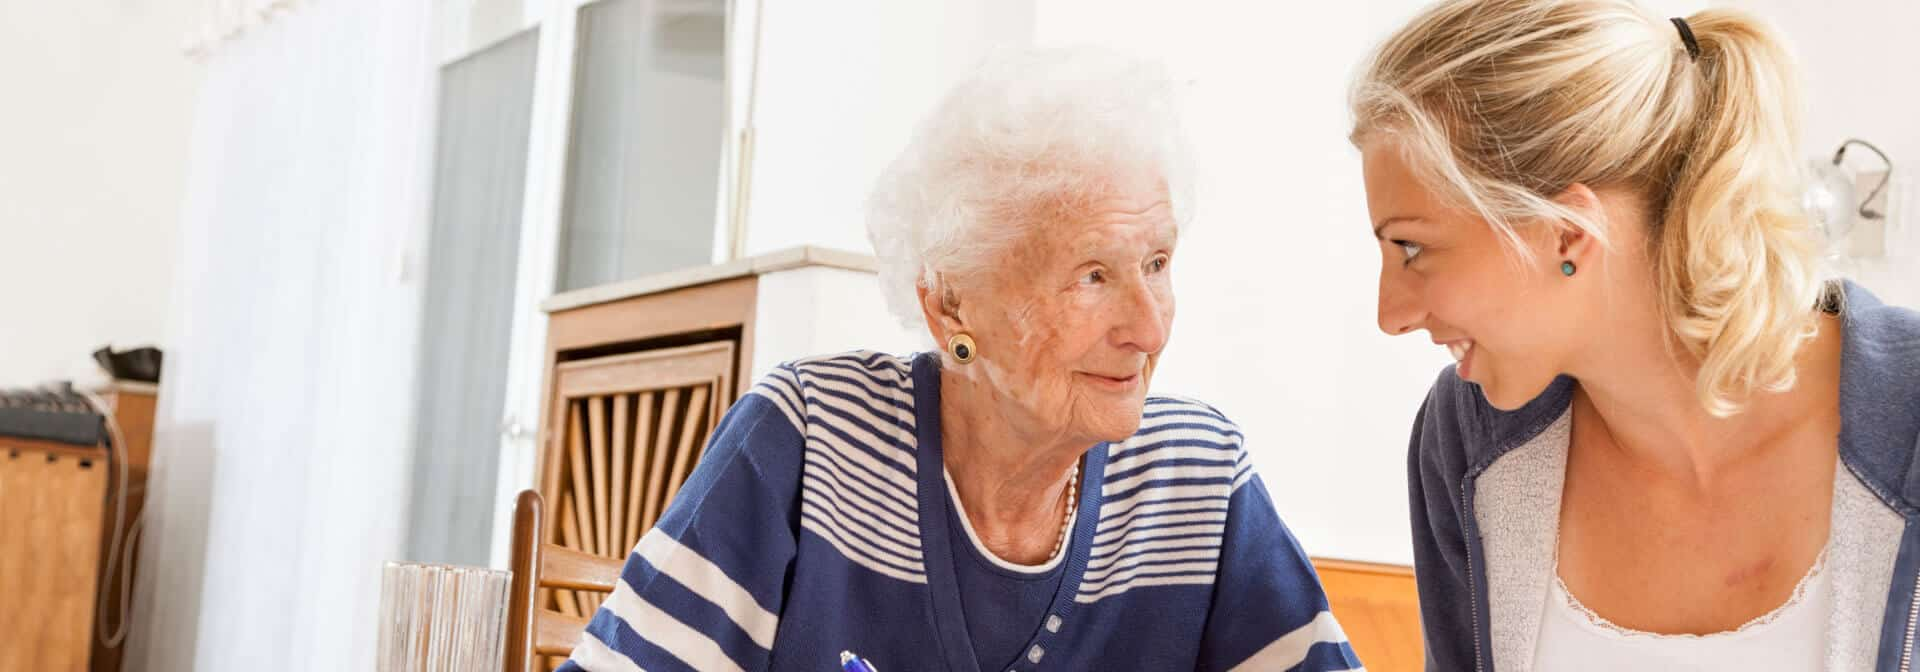 Caregiver and female client talking